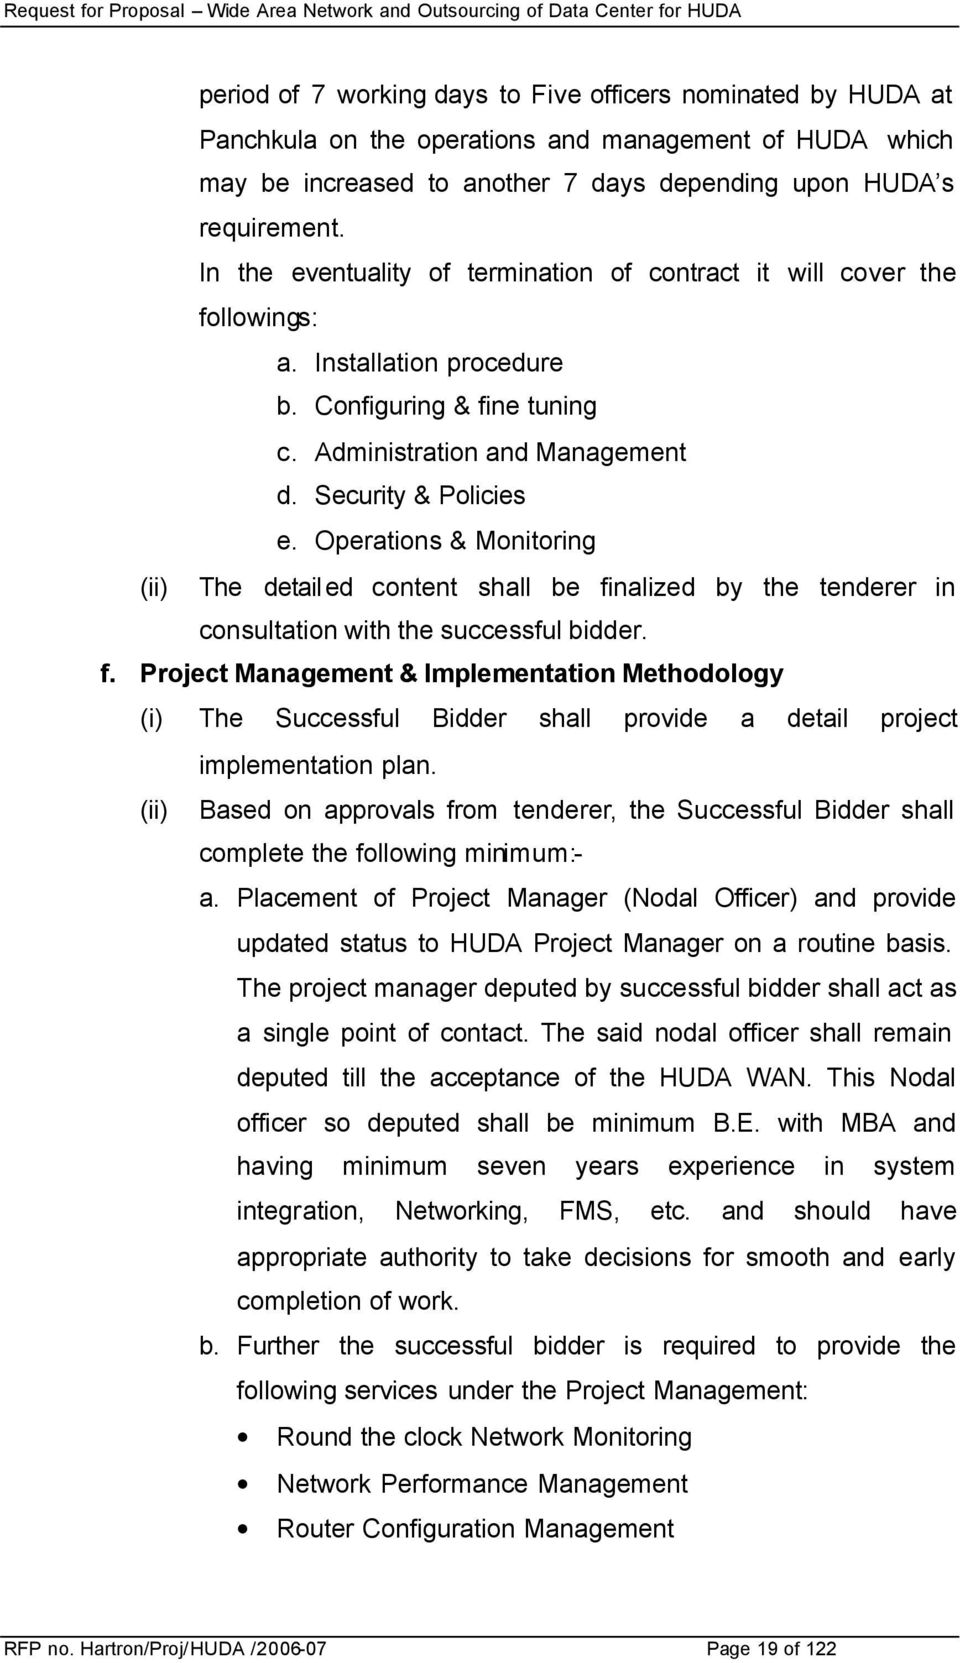 Operations & Monitoring (ii) The detailed content shall be finalized by the tenderer in consultation with the successful bidder. f. Project Management & Implementation Methodology (i) The Successful Bidder shall provide a detail project implementation plan.